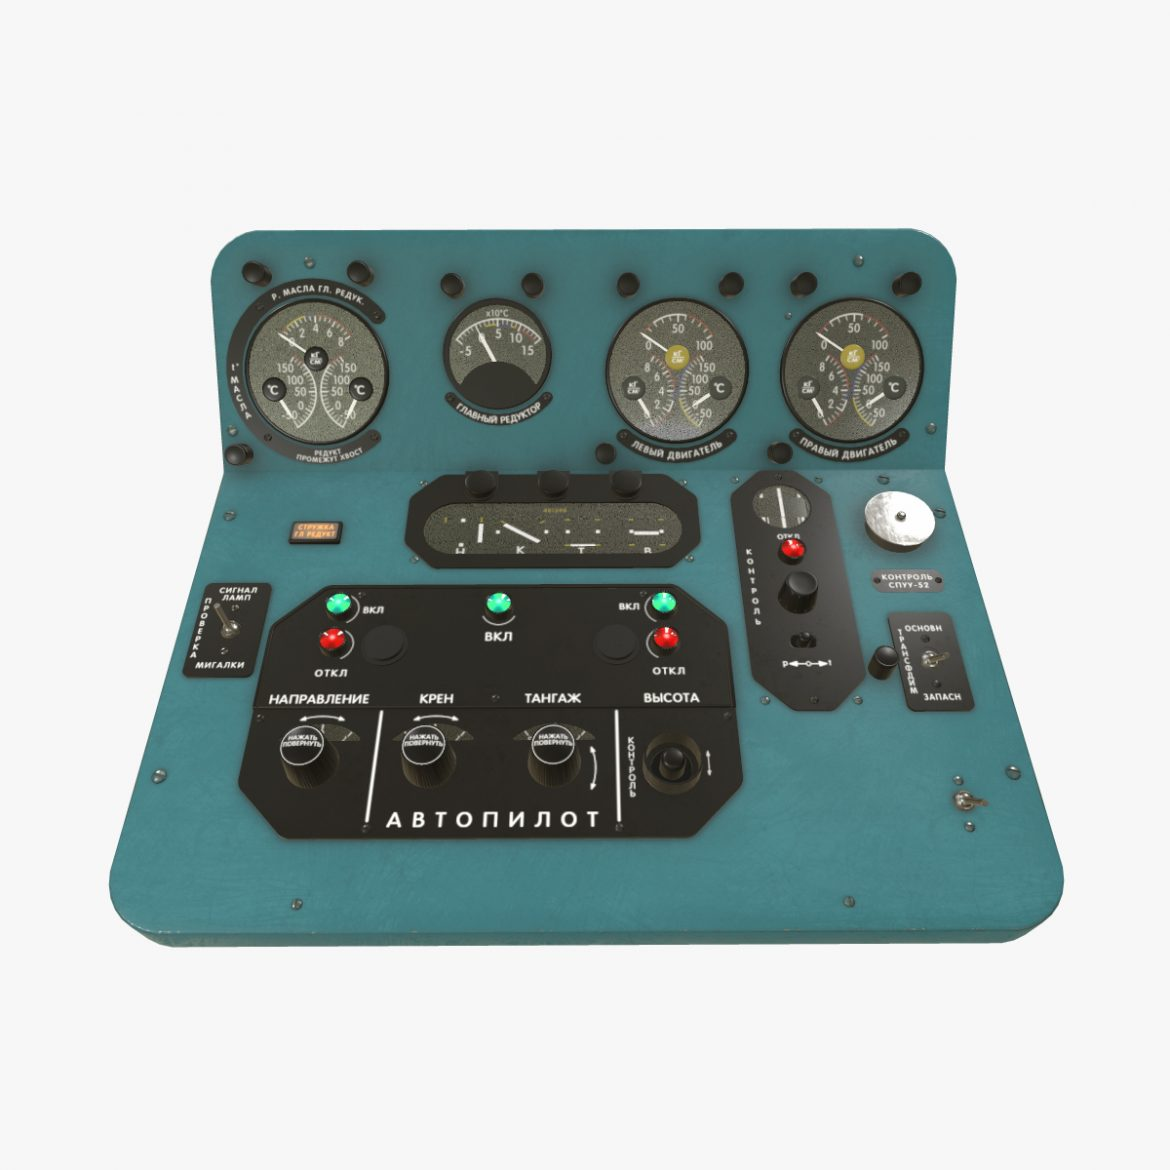 mi-8mt mi-17mt central panels board russian 3d model 3ds max fbx obj 299249